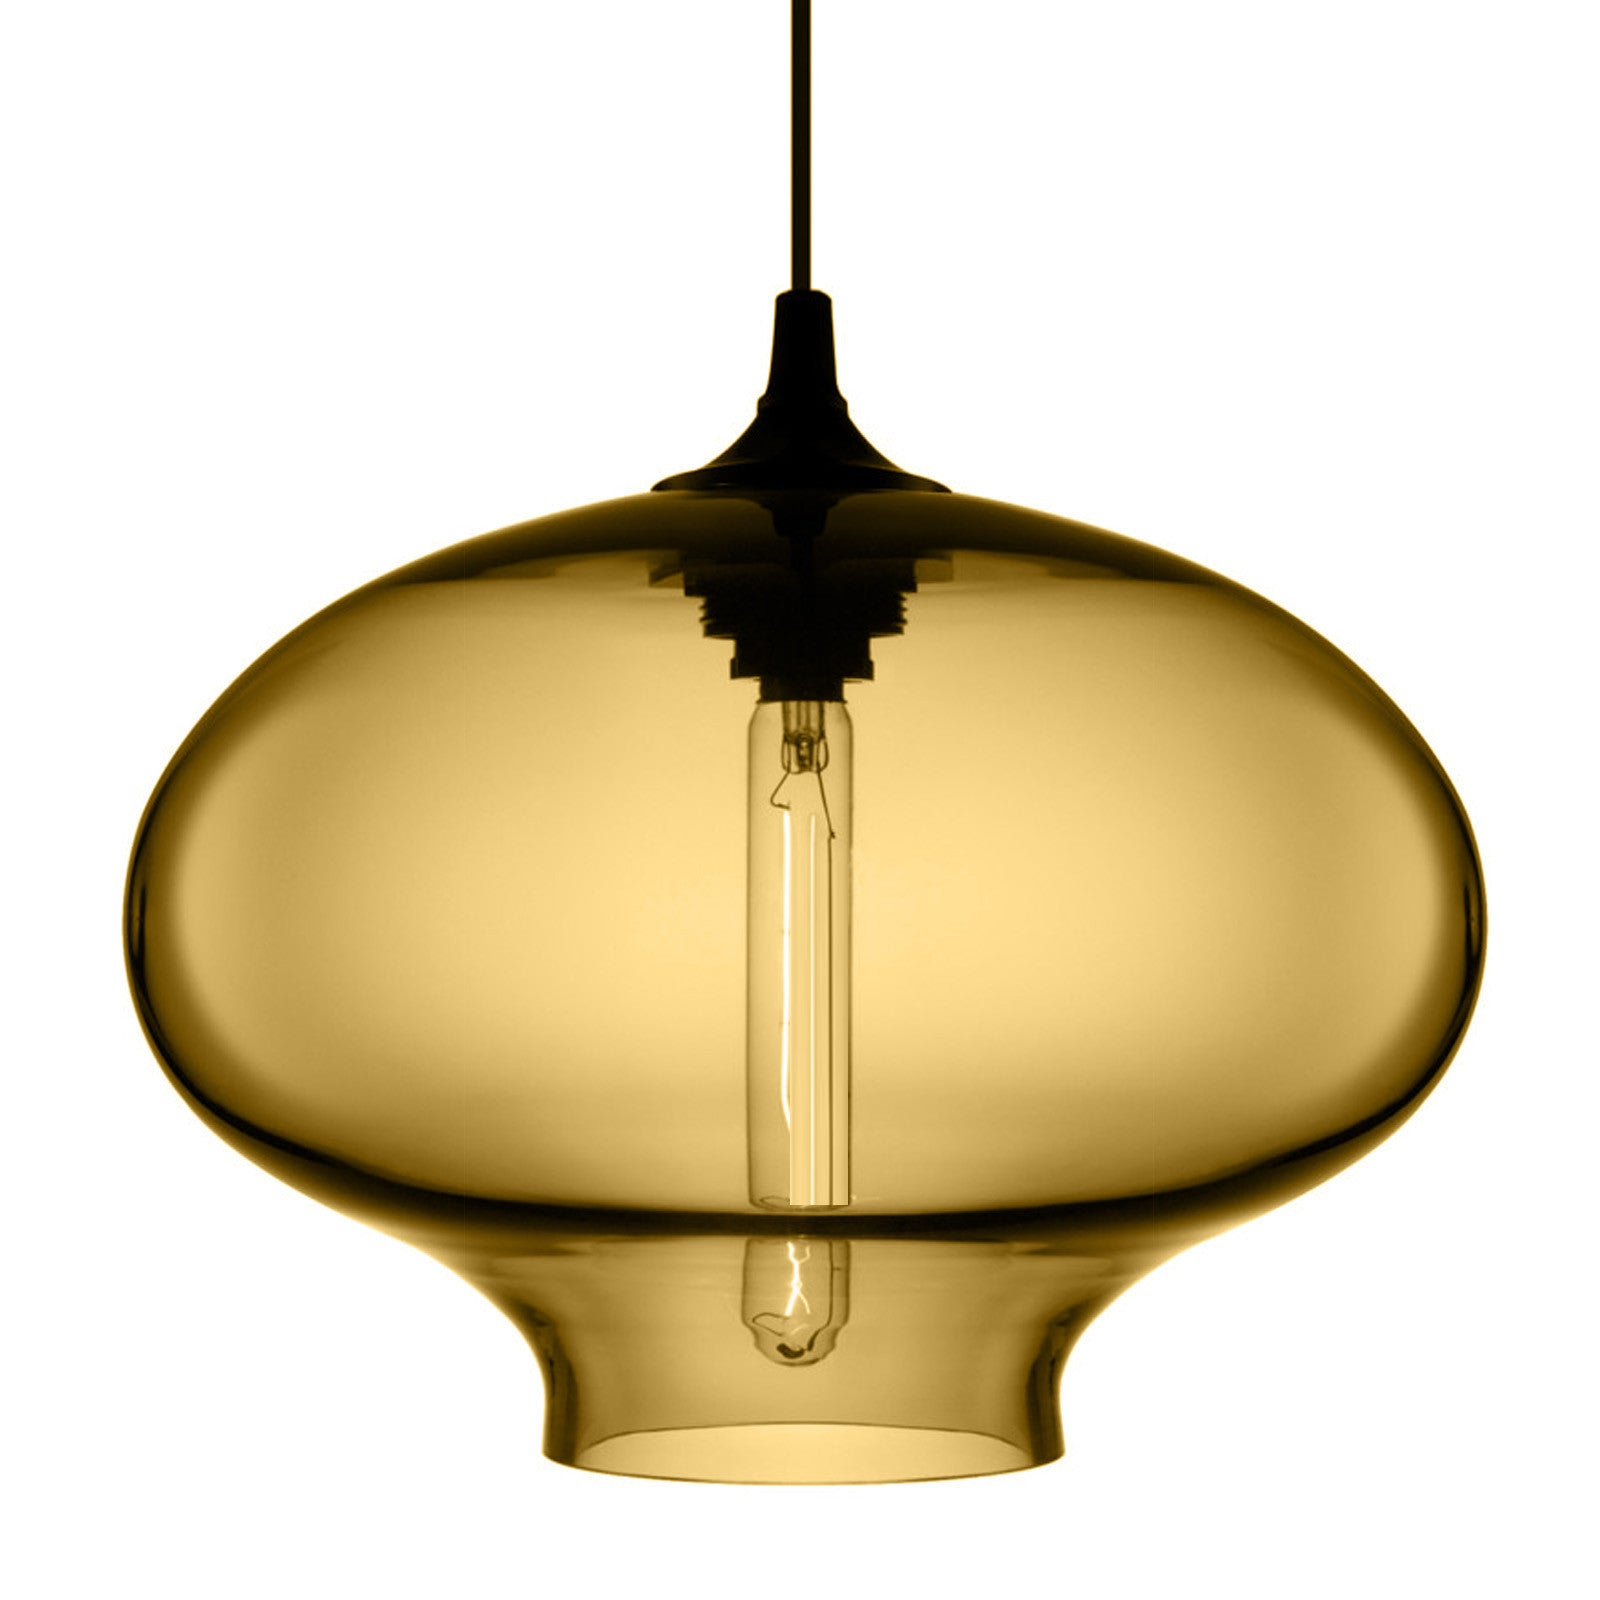 Amber Glass Pendant lamp  CY-DD-JYG-2A -  مصباح معلق من زجاج العنبر - Shop Online Furniture and Home Decor Store in Dubai, UAE at ebarza